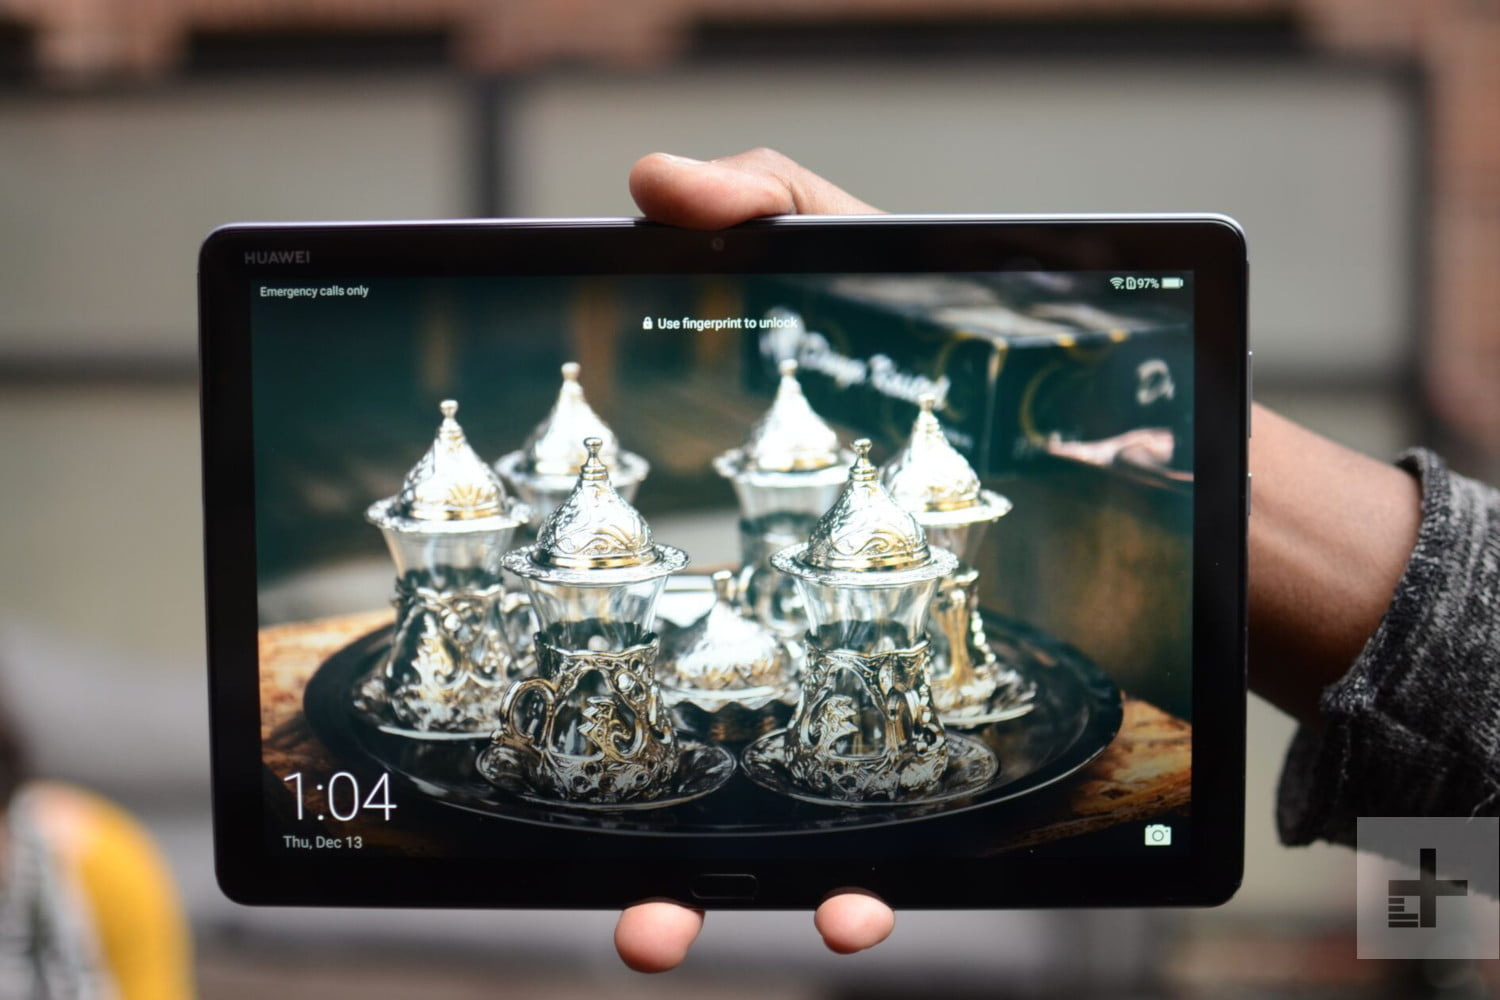 Huawei MatePad M5 Lite is a stylish, feature-packed smart tablet at a nice price